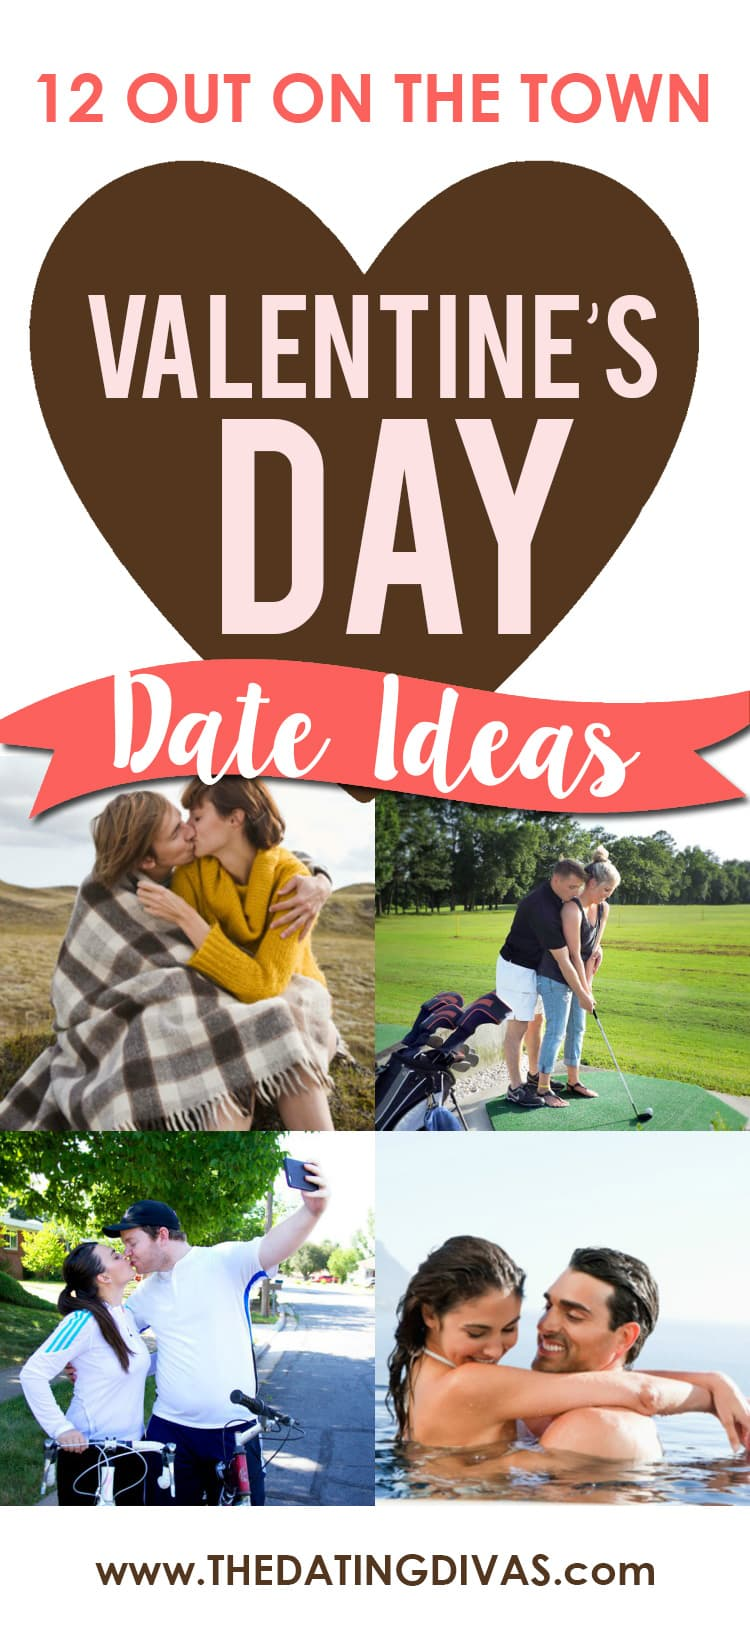 Out On The Town Valentine's Day Date Ideas